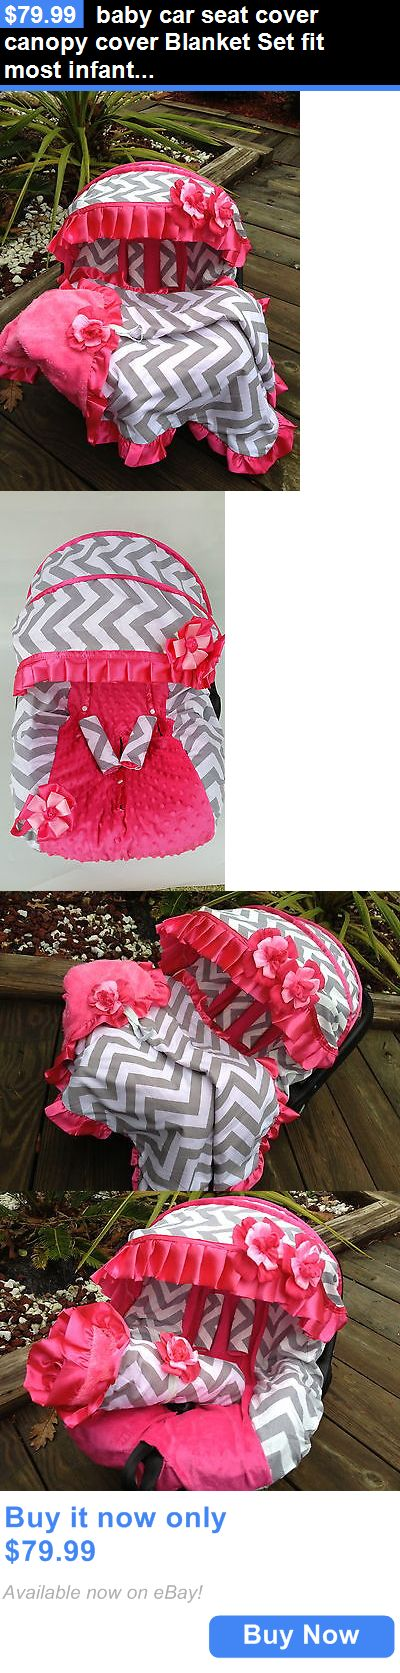 Baby: Baby Car Seat Cover Canopy Cover Blanket Set Fit Most Infant Seat H-Pink BUY IT NOW ONLY: $79.99